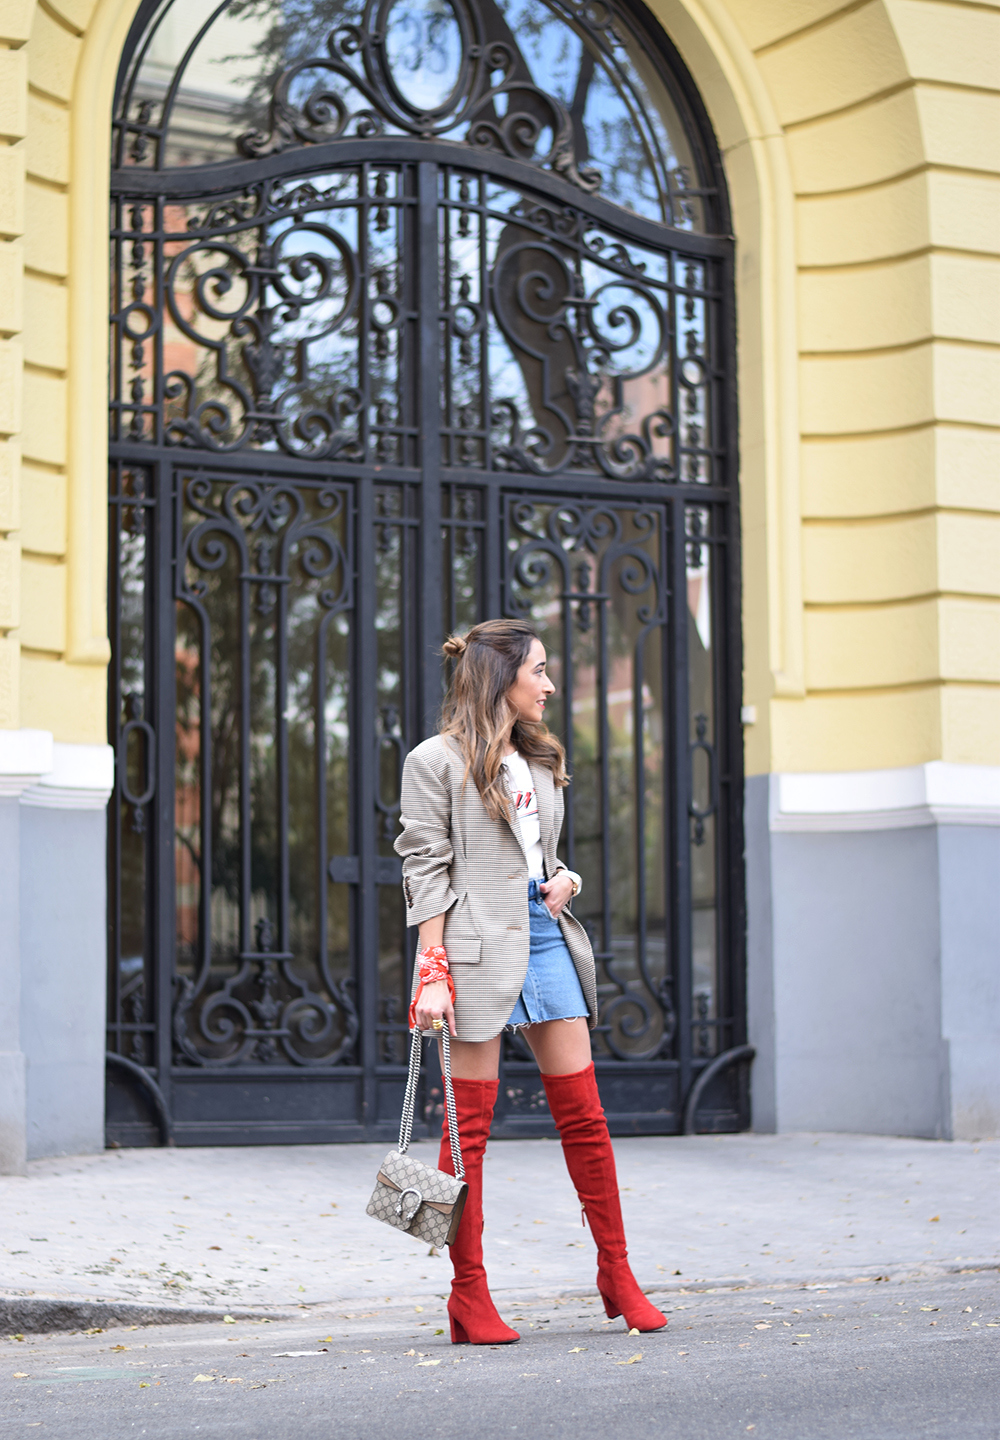 Houndstooth blazer denim skirt gucci bag red over the knee boots autumn outfit style fashion01